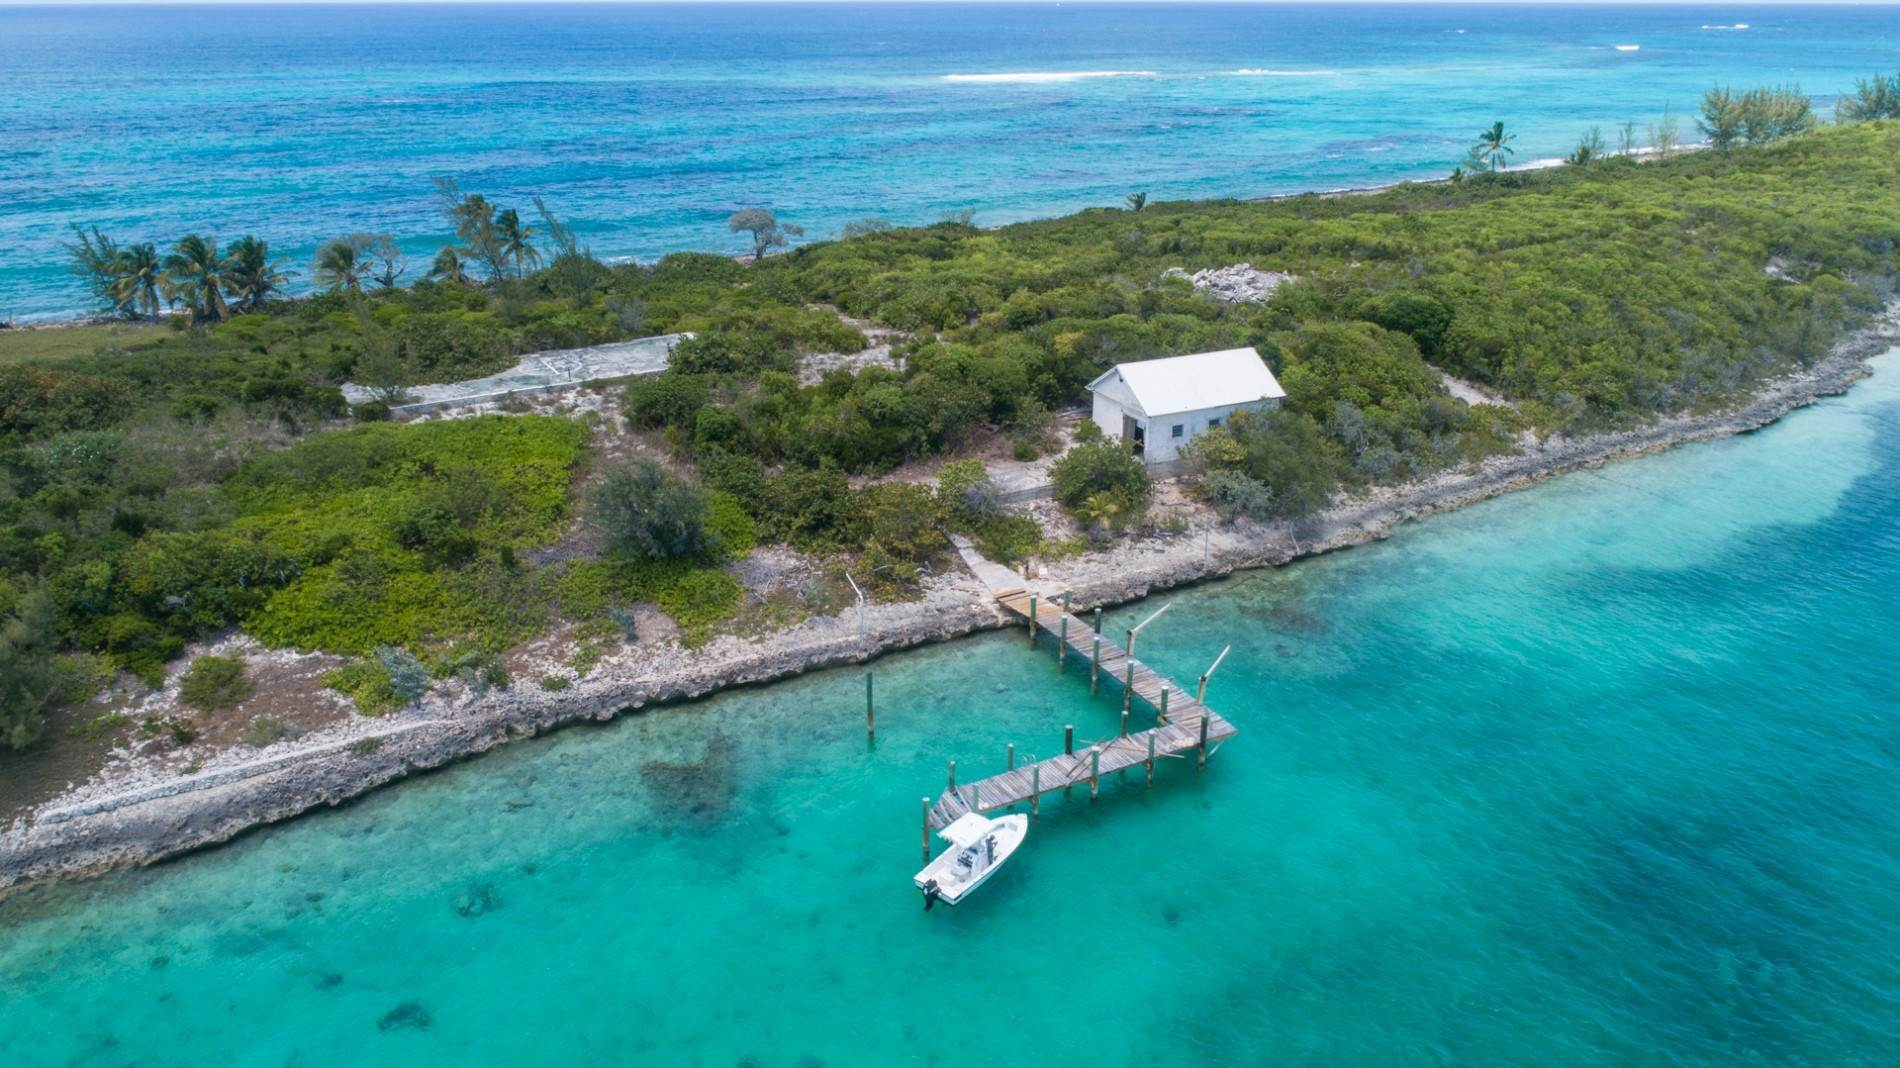 3. Private Islands for Sale at Pierre Island, A Perfect Private Retreat Island Near Harbour Island - MLS 40806 Harbour Island, Eleuthera, Bahamas